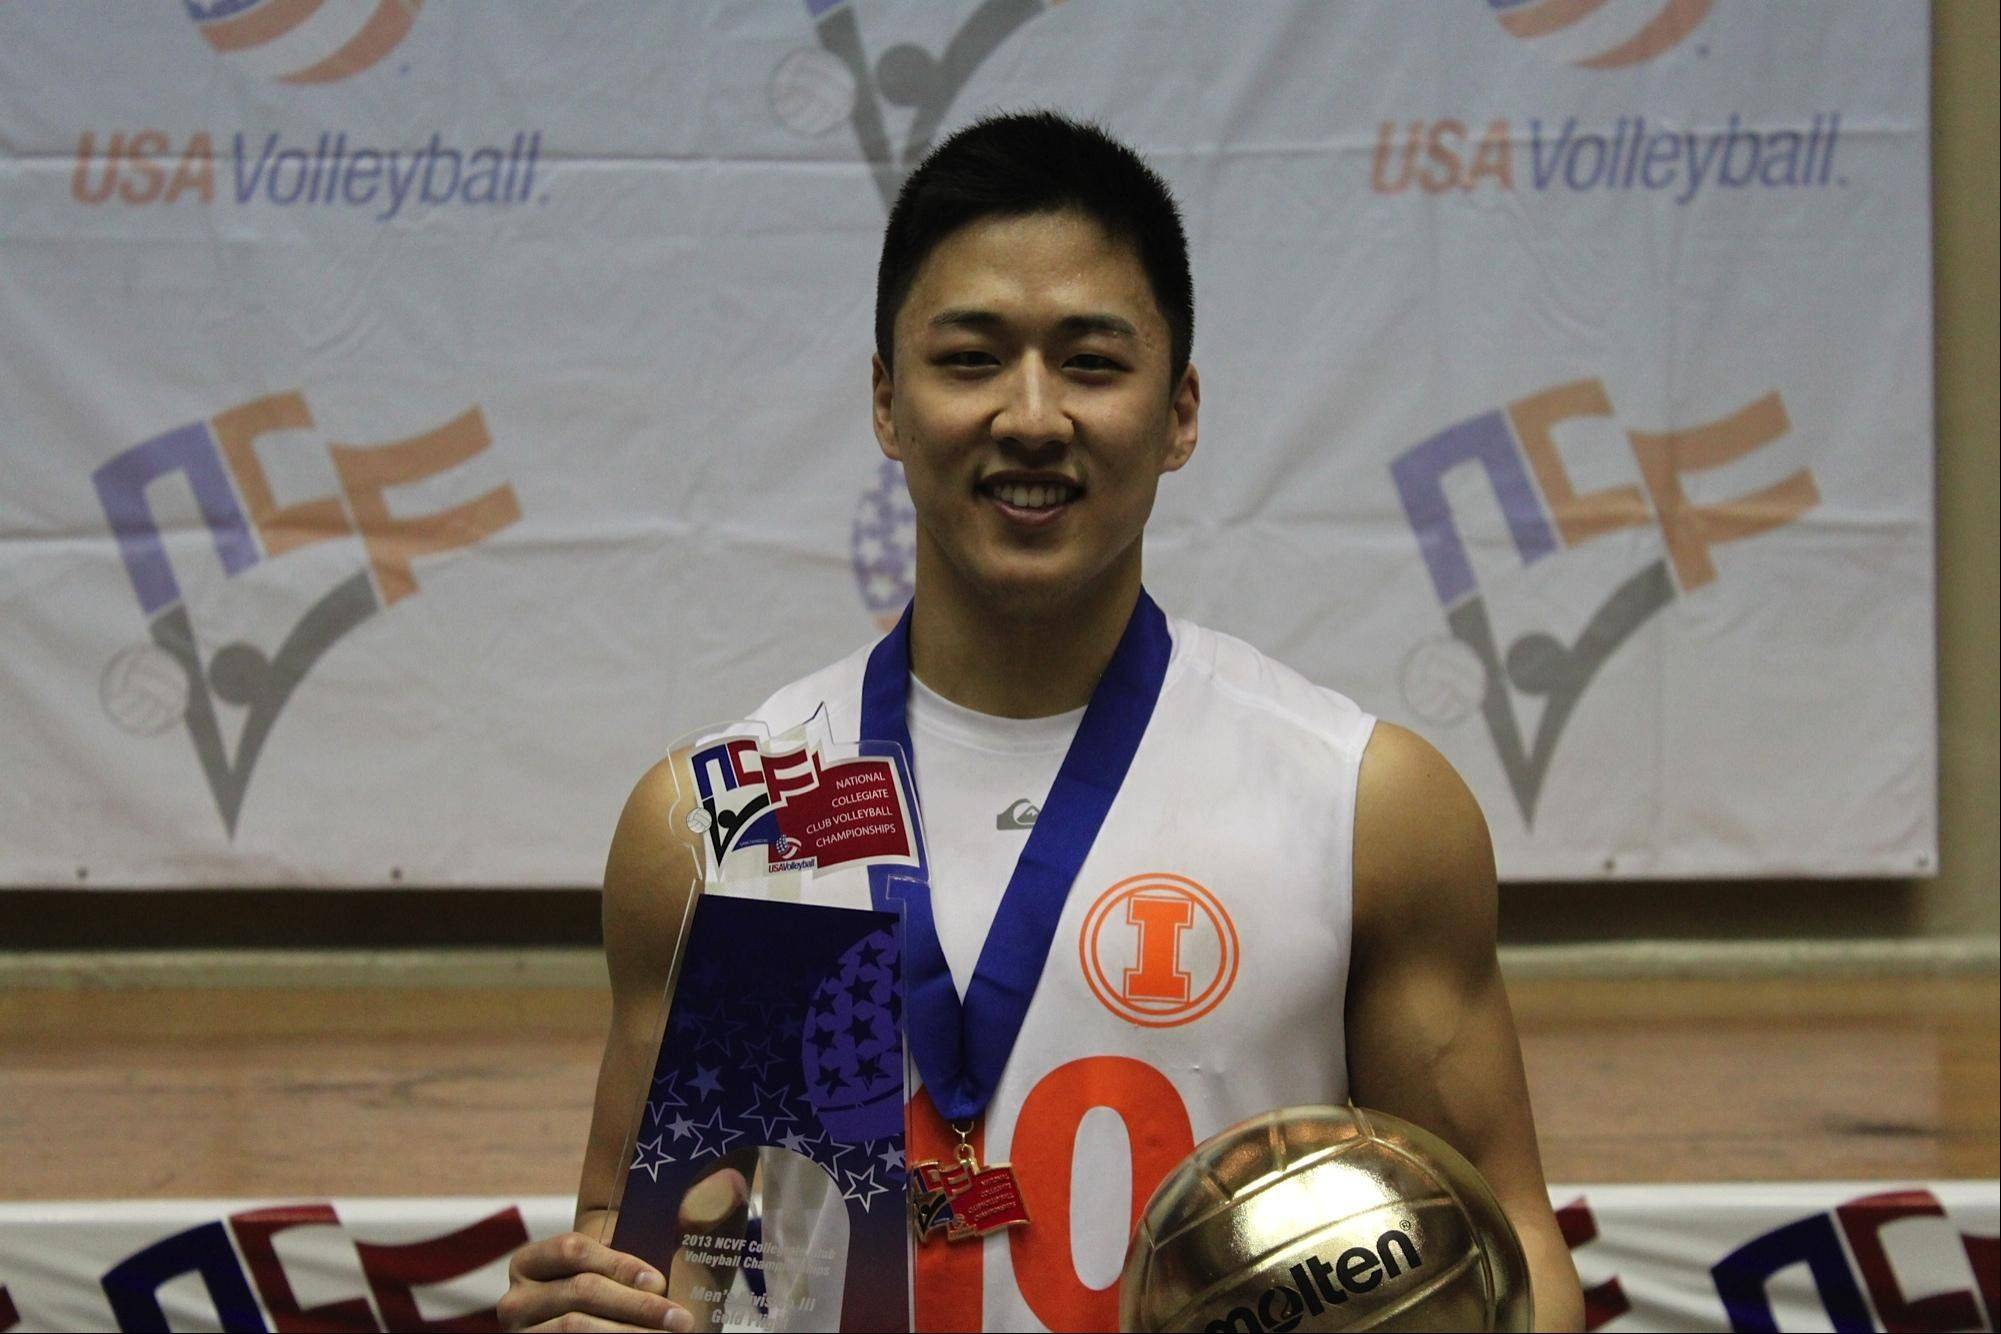 Ernie Choi helped lead his University of Illinois Orange D-III team to the championship of the NCVF National Collegiate Club Volleyball championships in Dallas, Texas.